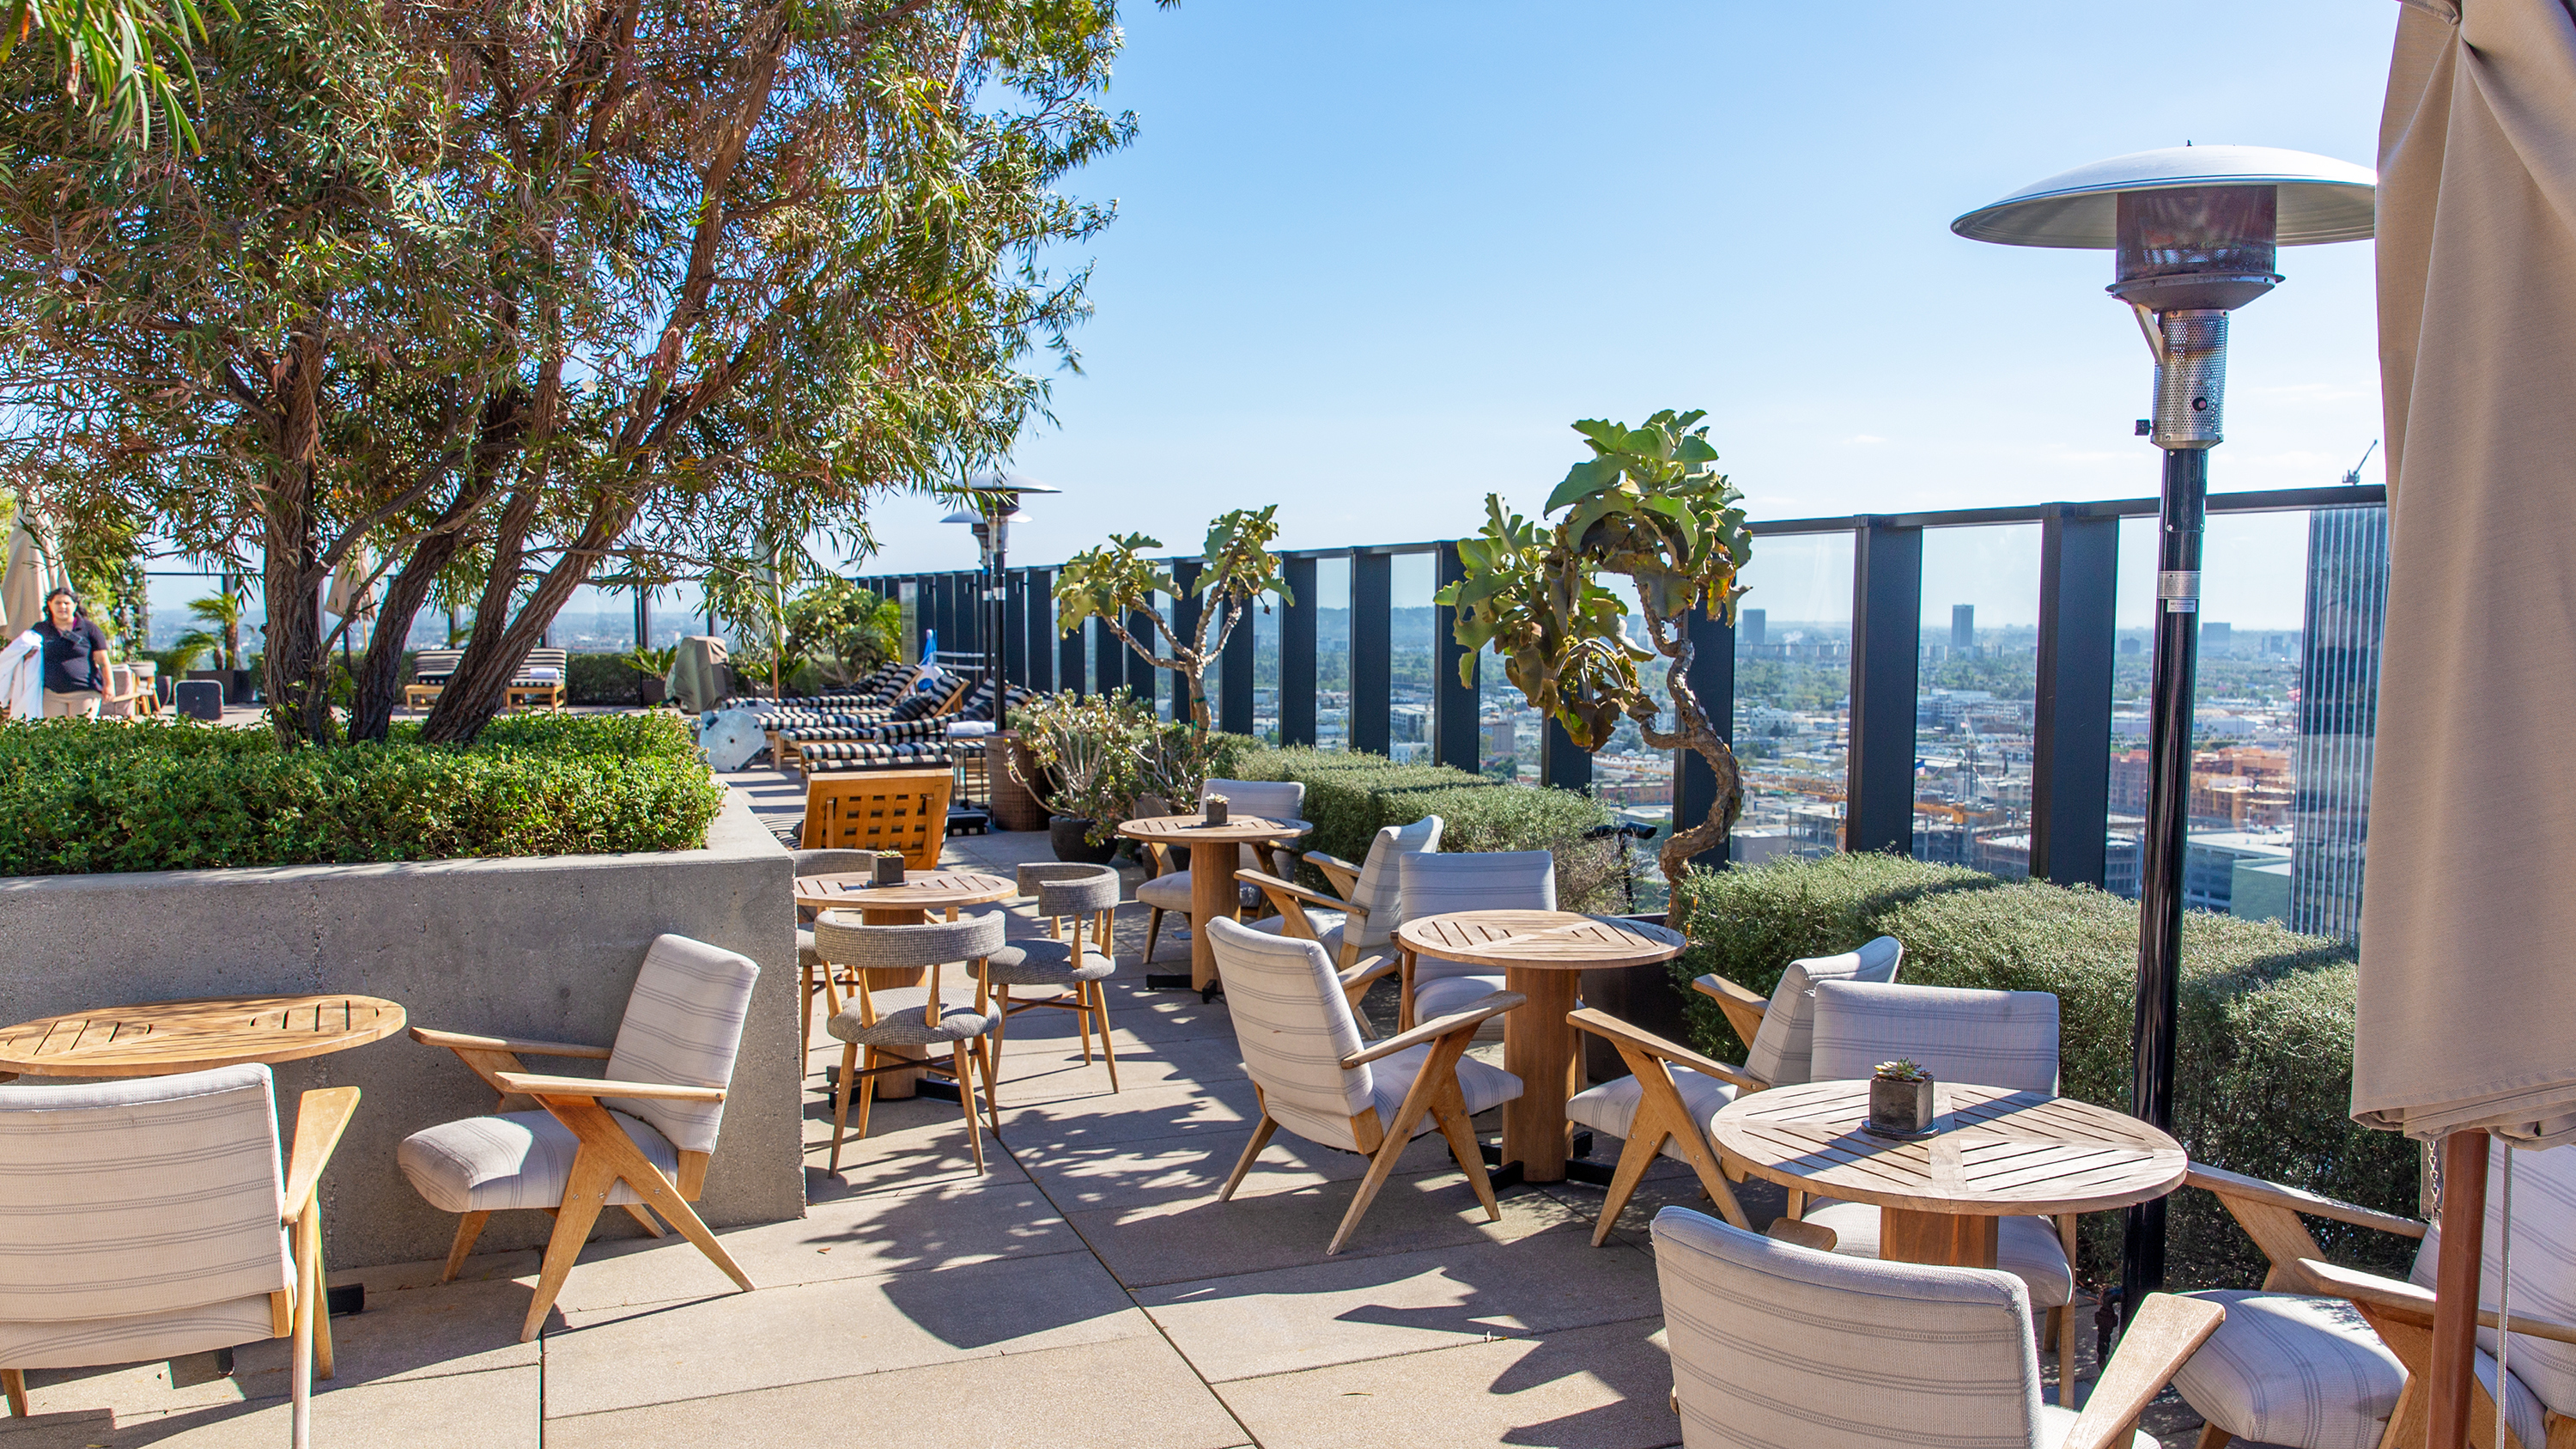 Meet Sorra, Hollywood's new rooftop bar and restaurant from the Hinoki and the Bird team